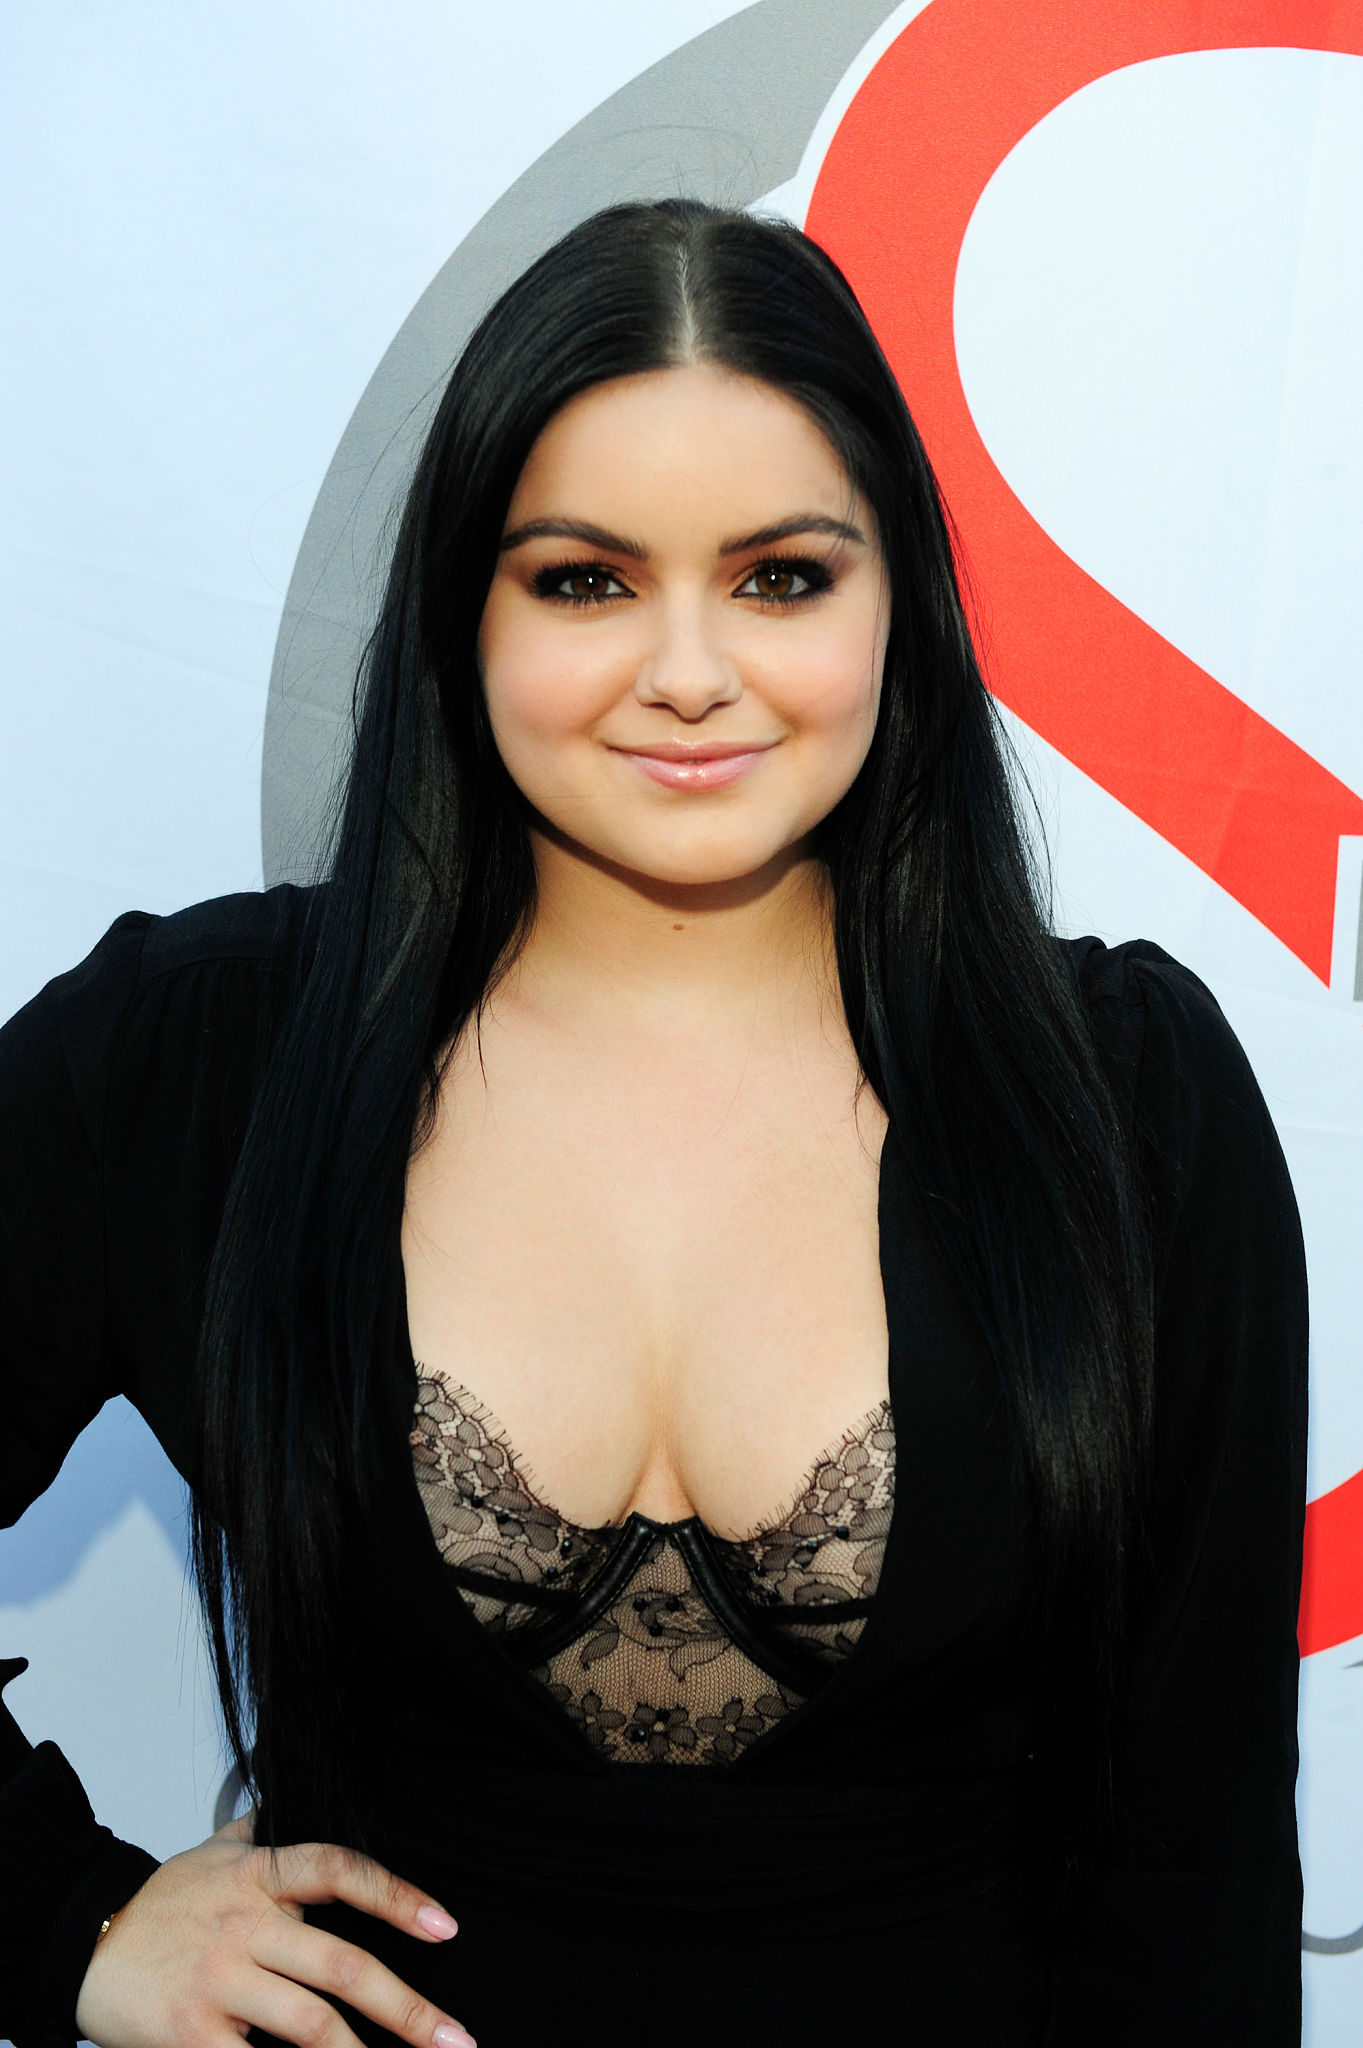 Ariel Winter Cleavage Photos